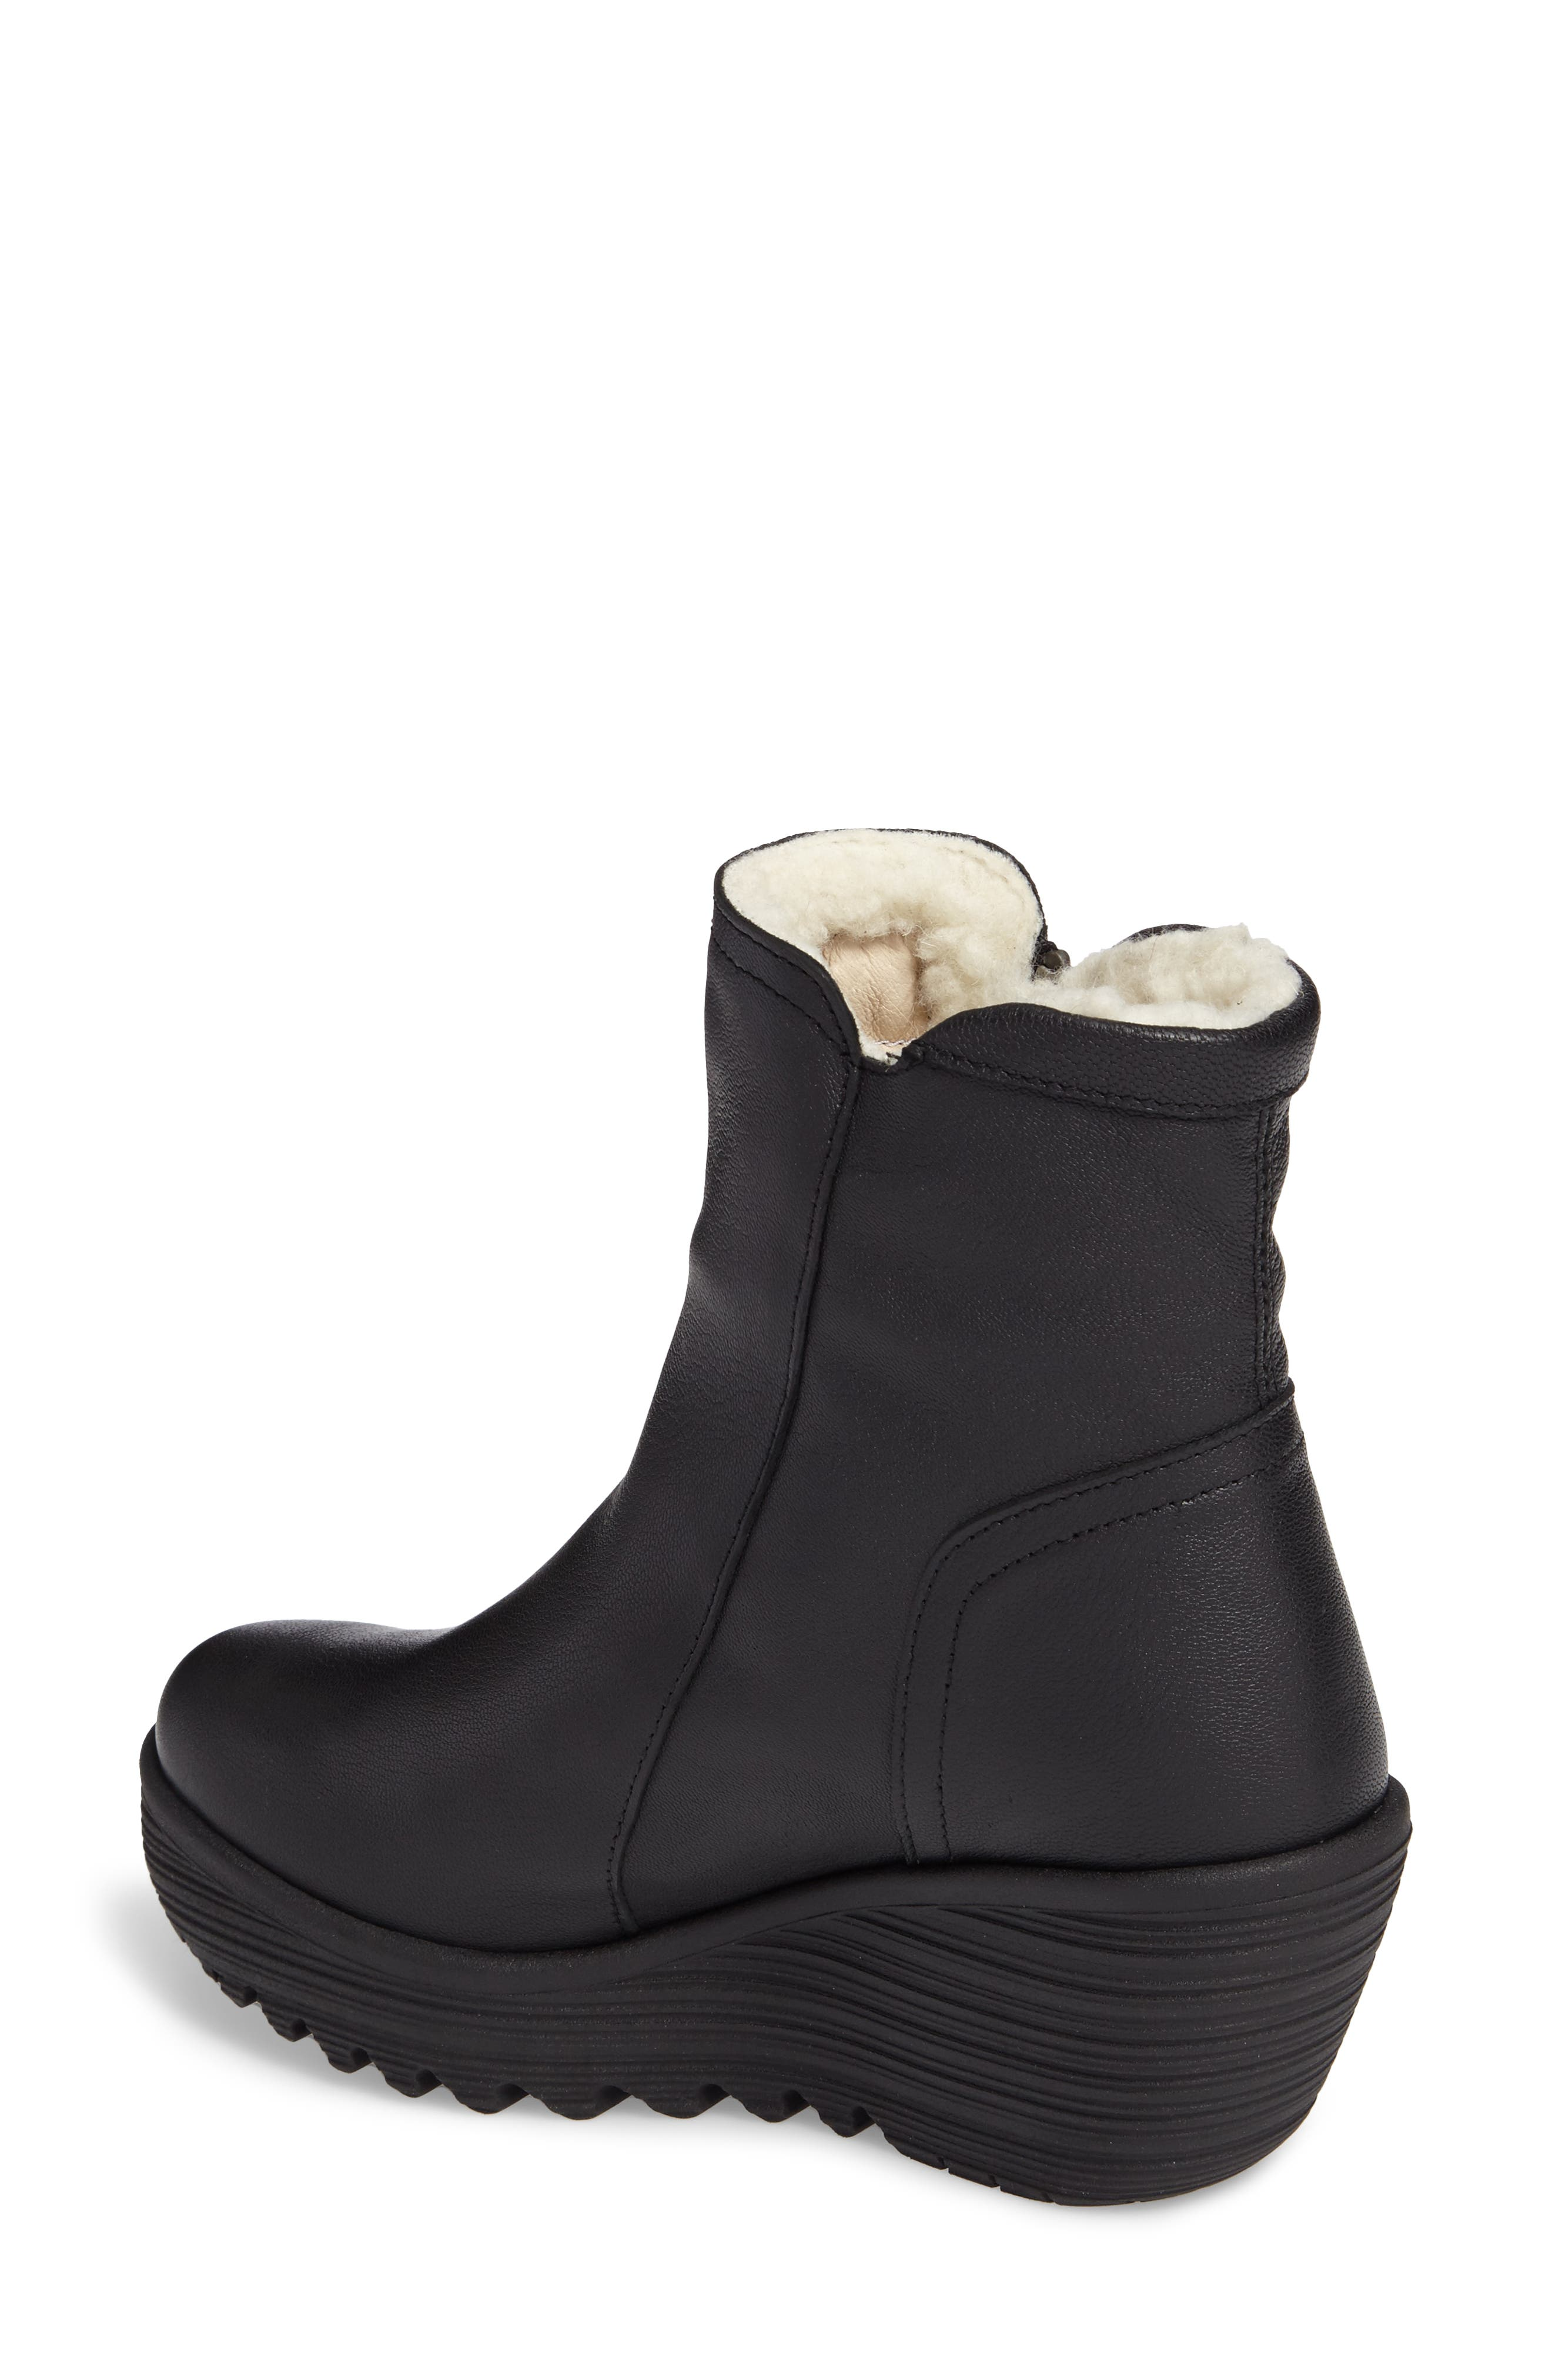 Waterproof Gore-Tex<sup>®</sup> Wedge Boot,                             Alternate thumbnail 2, color,                             Black Leather